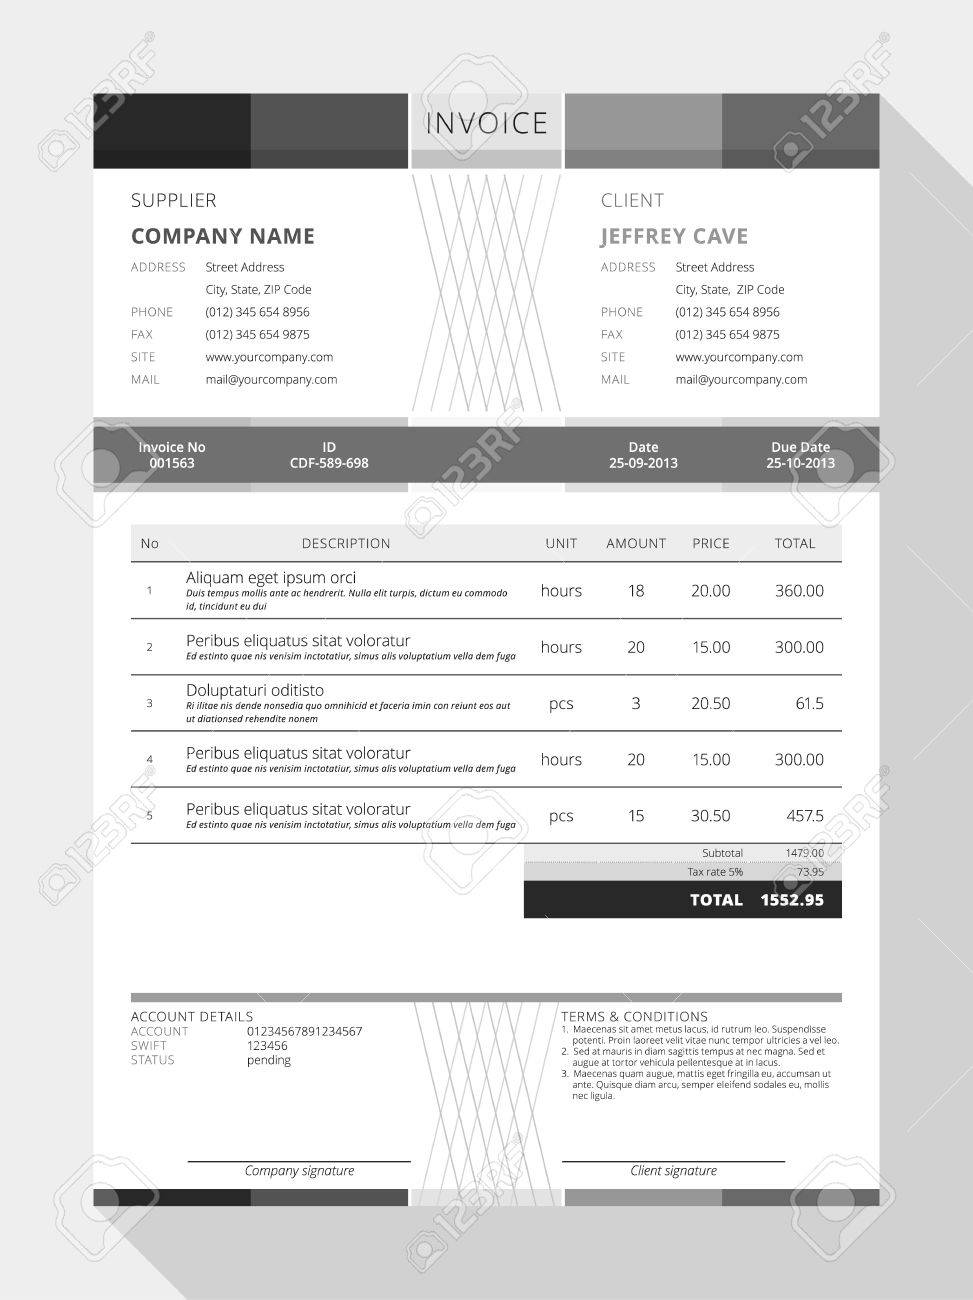 Howcanigettallerus  Pretty Design An Invoice  Professional Graphic Design Invoice  With Fascinating Vector Customizable Invoice Form Template Design Vector   Design An Invoice With Enchanting Taxpayer Receipt Also Receipt Holders In Addition App That Scans Receipts And Paid In Full Receipt Template As Well As Business Receipts App Additionally How Long Do You Keep Receipts From Happytomco With Howcanigettallerus  Fascinating Design An Invoice  Professional Graphic Design Invoice  With Enchanting Vector Customizable Invoice Form Template Design Vector   Design An Invoice And Pretty Taxpayer Receipt Also Receipt Holders In Addition App That Scans Receipts From Happytomco